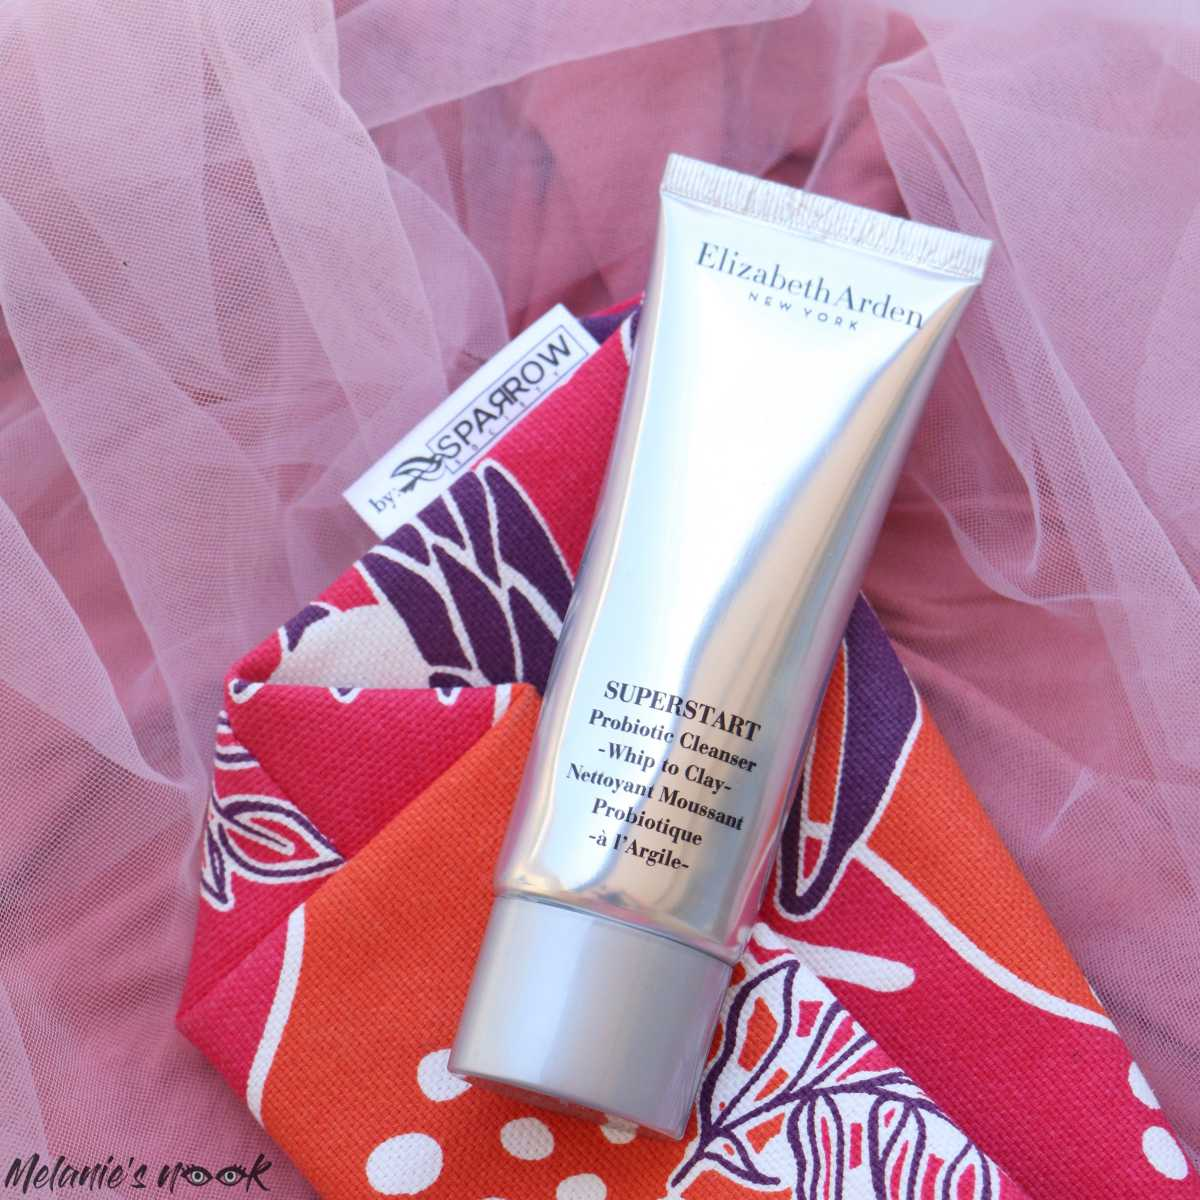 Elizabeth Arden Gift with Purchase 2020 - Cleanser